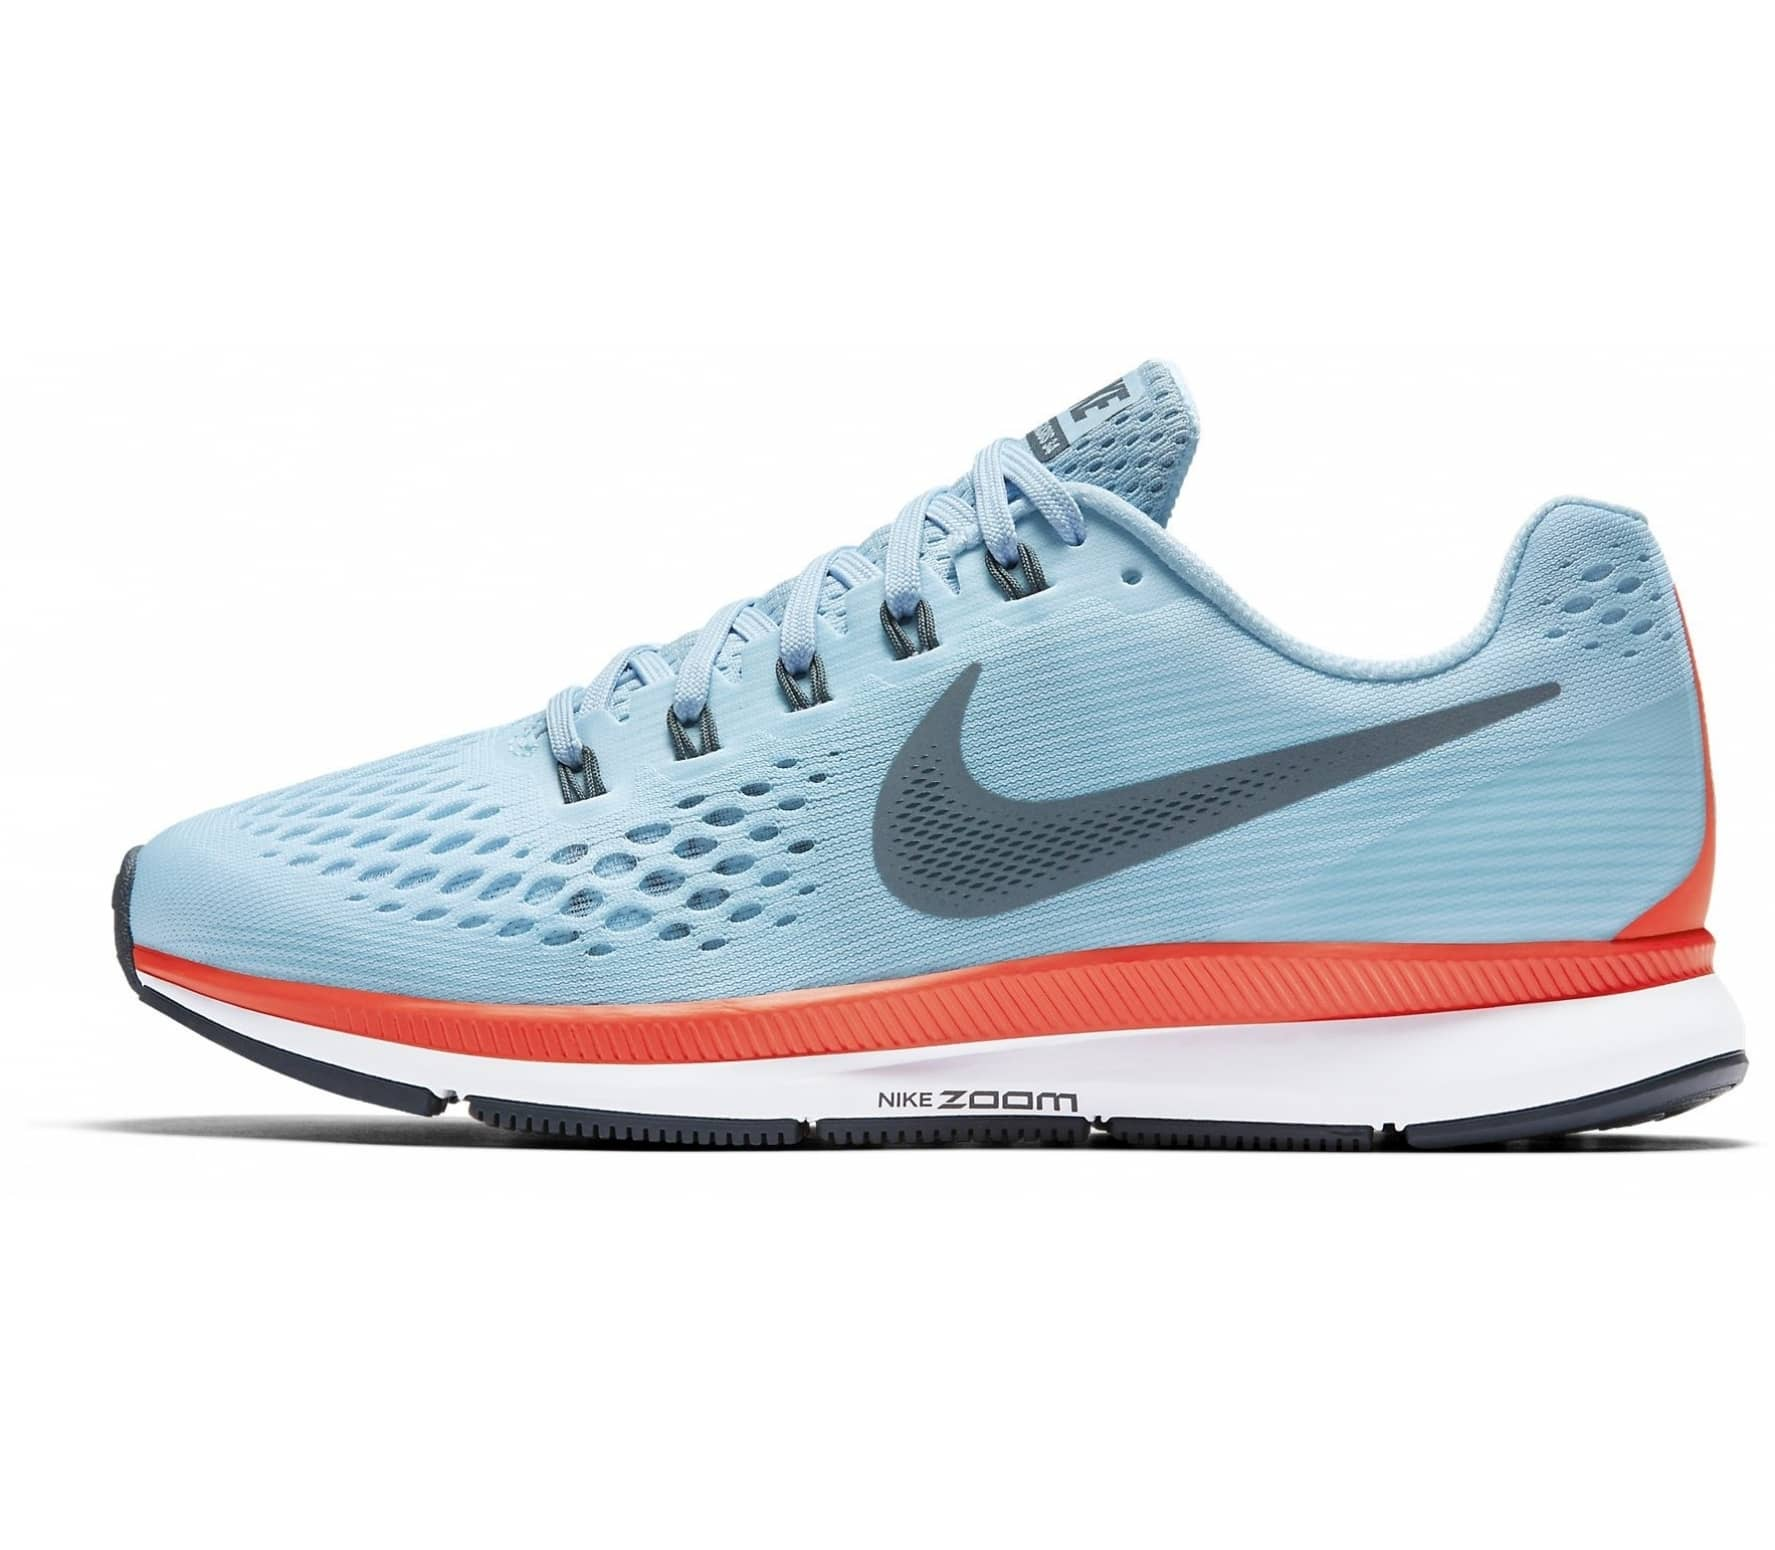 e4baaff08846 Nike - Air Zoom Pegasus 34 women s running shoes (light blue) - buy ...